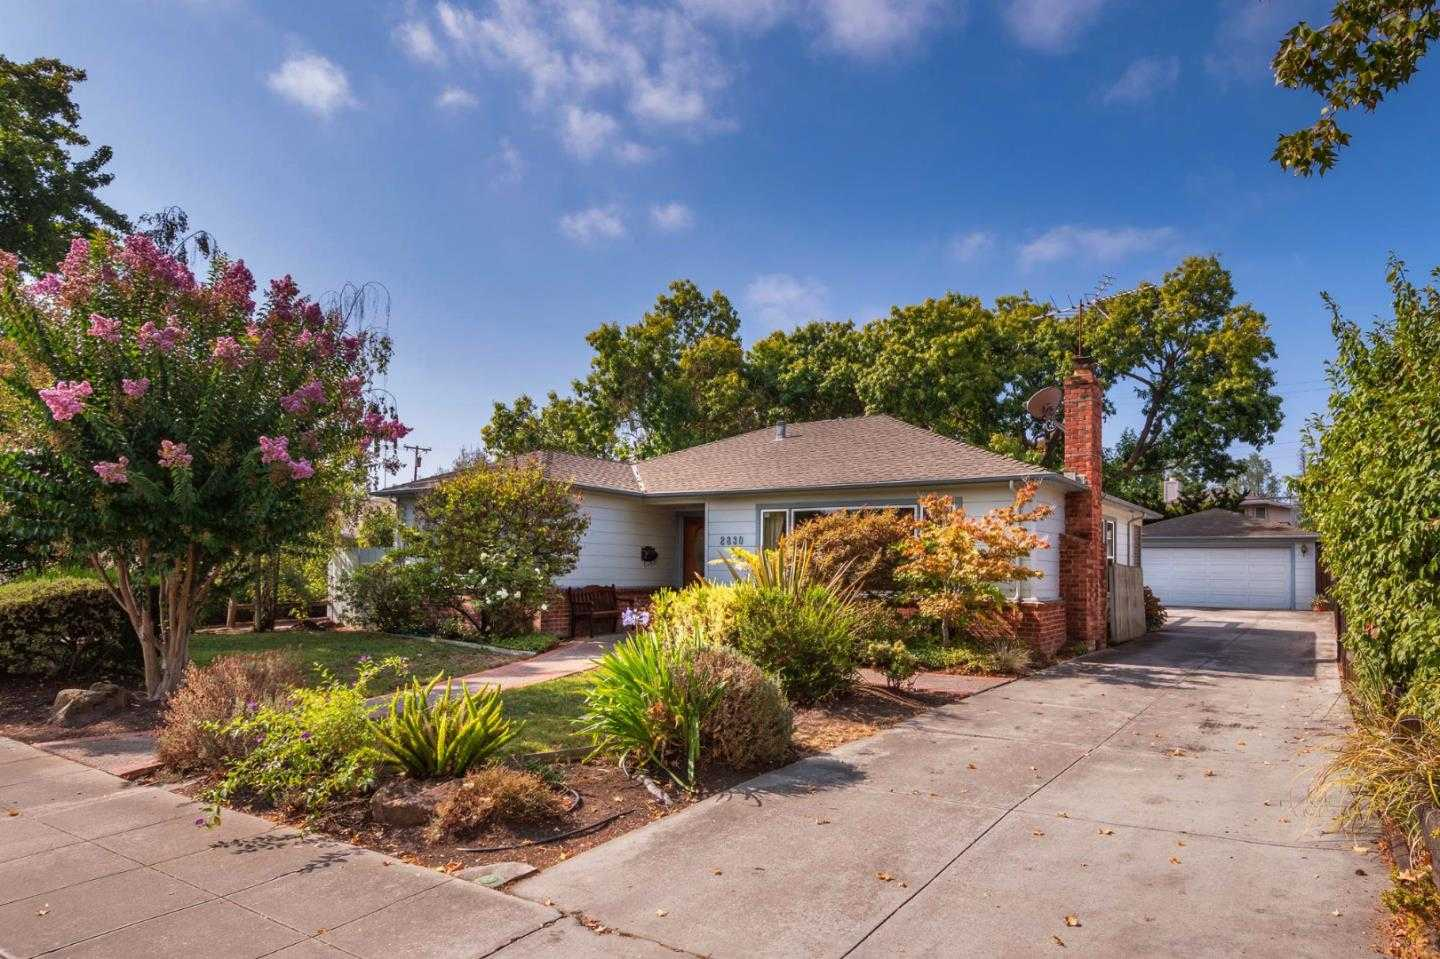 $2,995,000 - 2Br/2Ba -  for Sale in Palo Alto